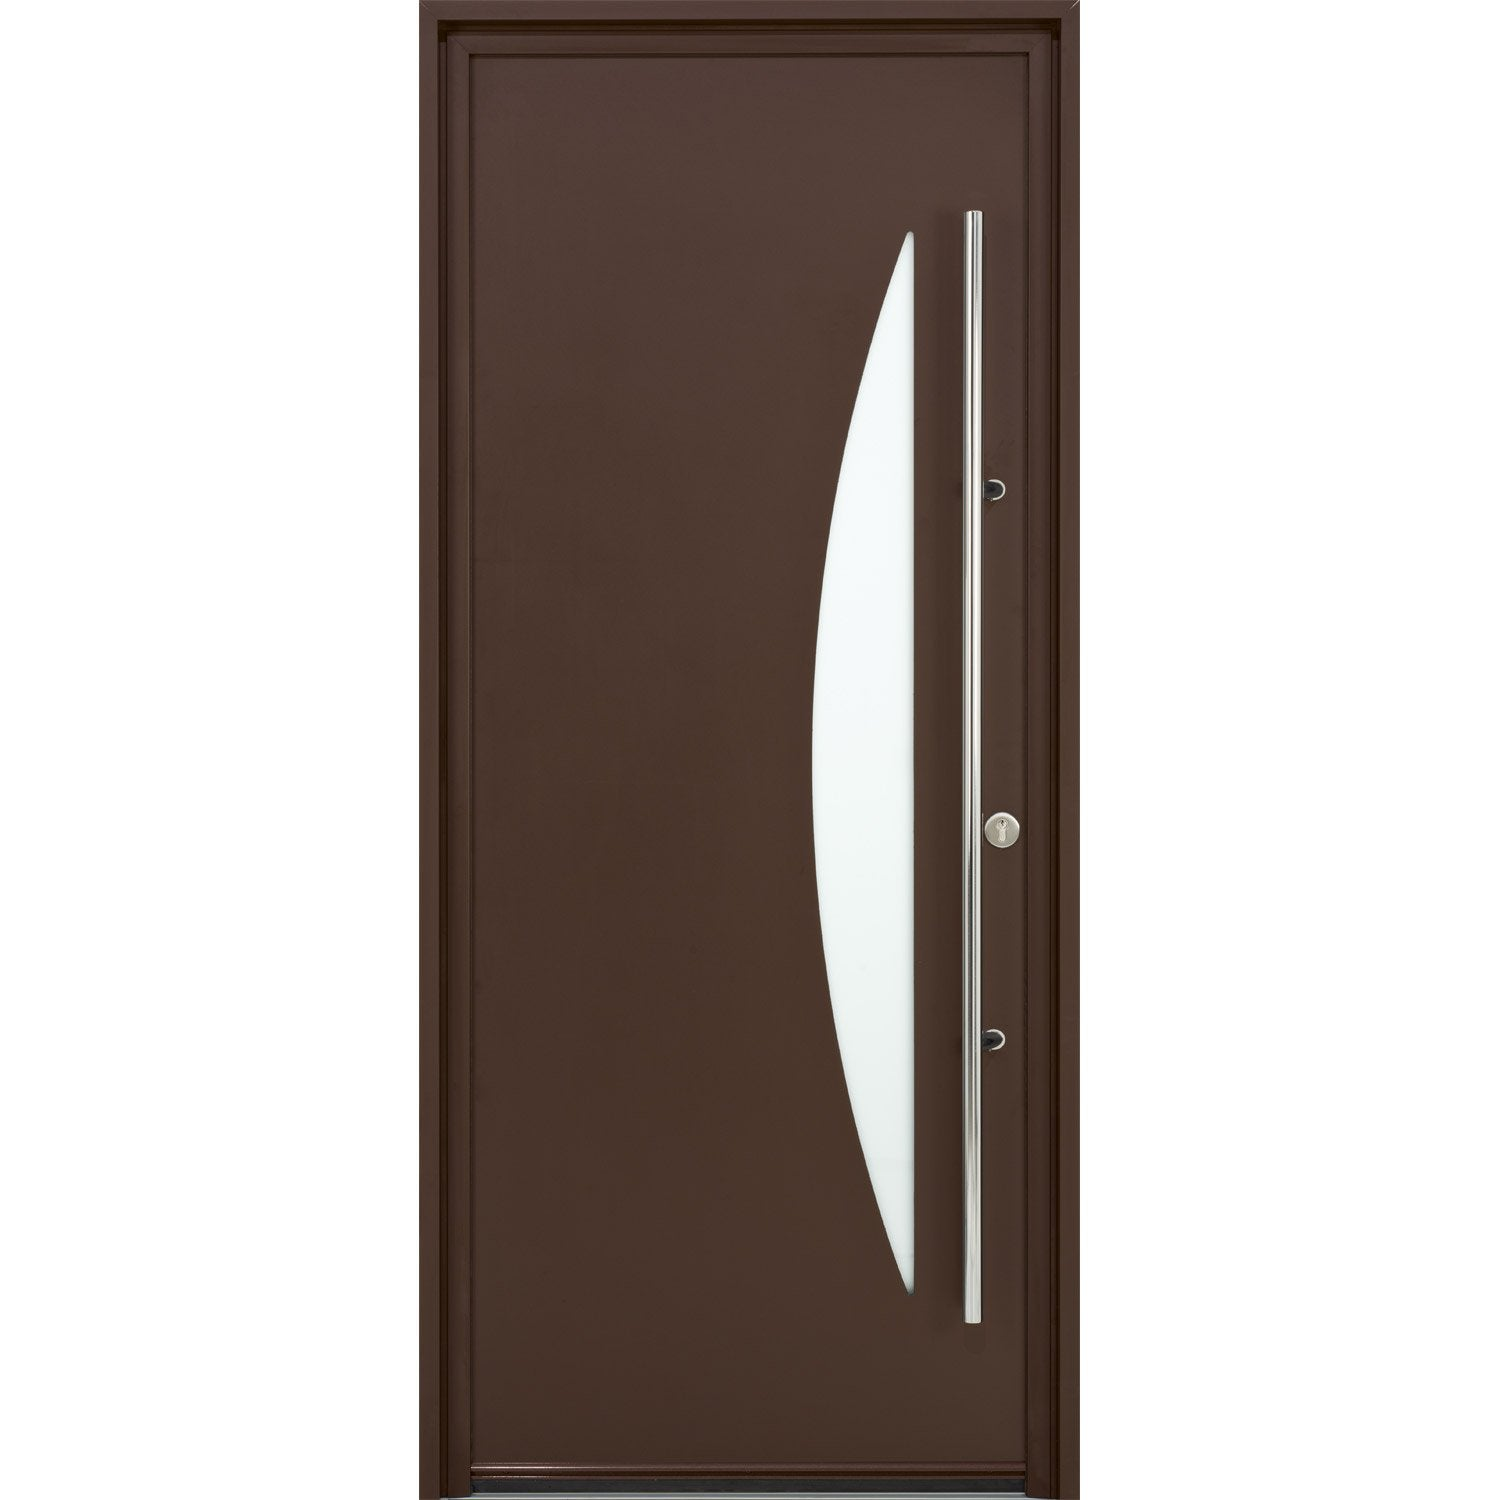 Porte d 39 entr e sur mesure en aluminium imperia excellence for Leroy merlin porte garage sur mesure